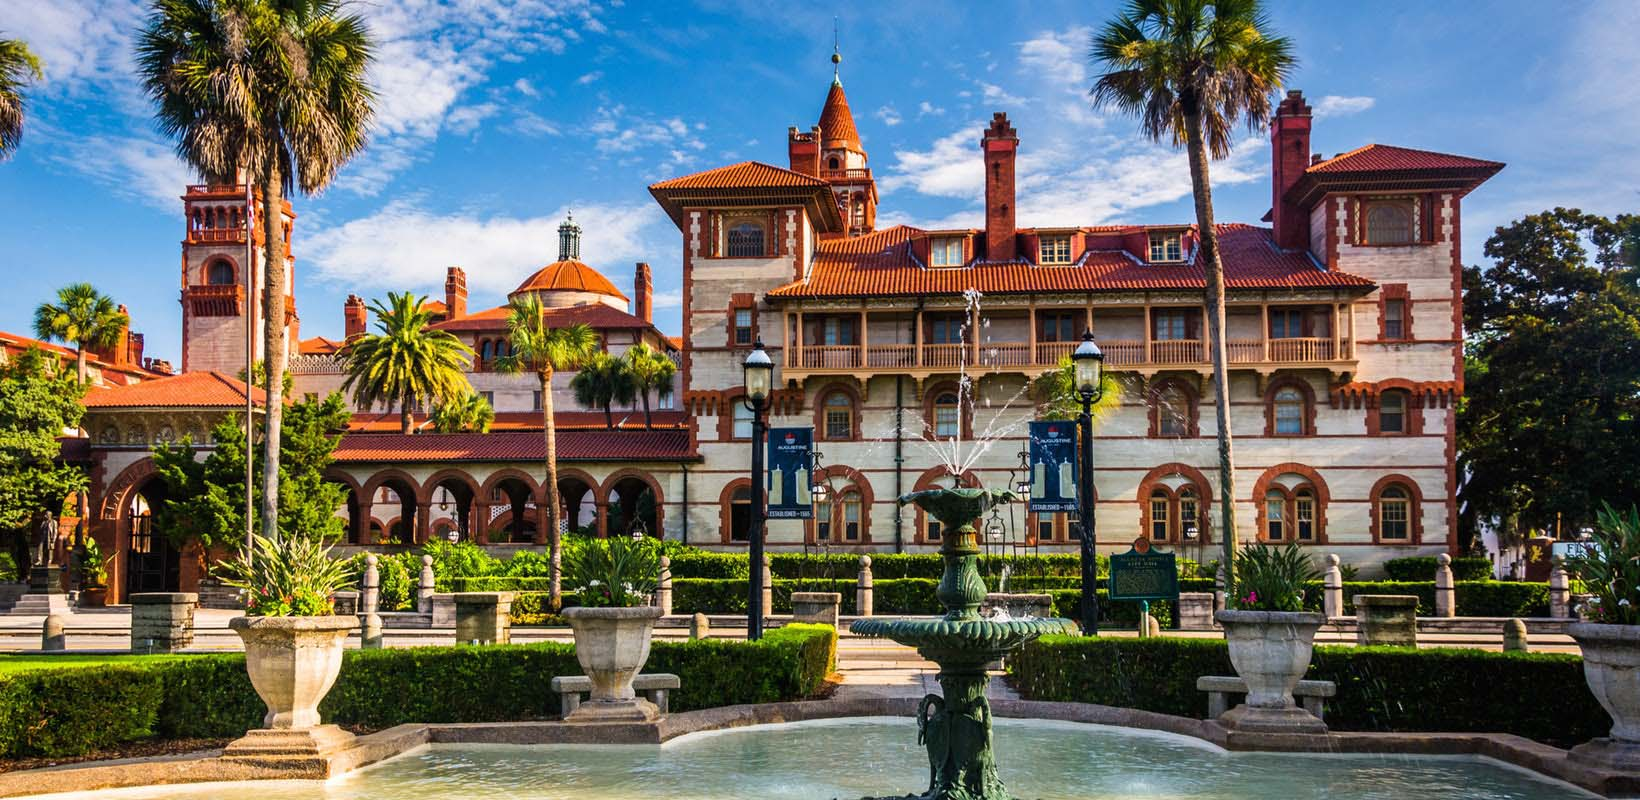 Day trip to St Augustine from Orlando